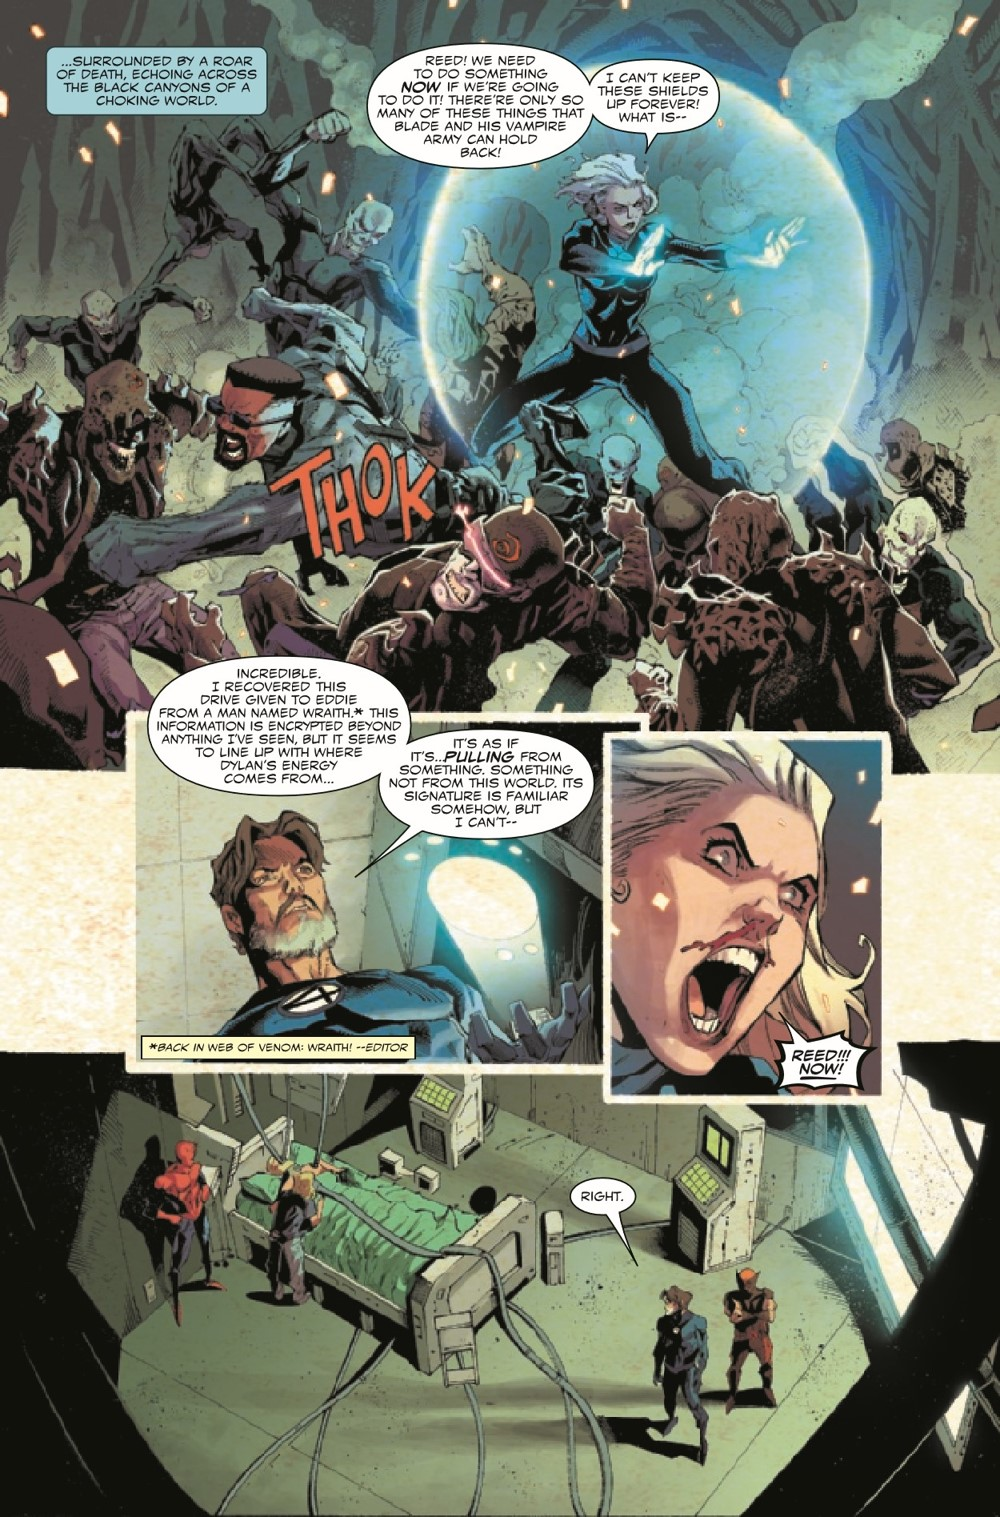 KINGINBLACK2020003_Preview-4 ComicList Previews: KING IN BLACK #3 (OF 5)